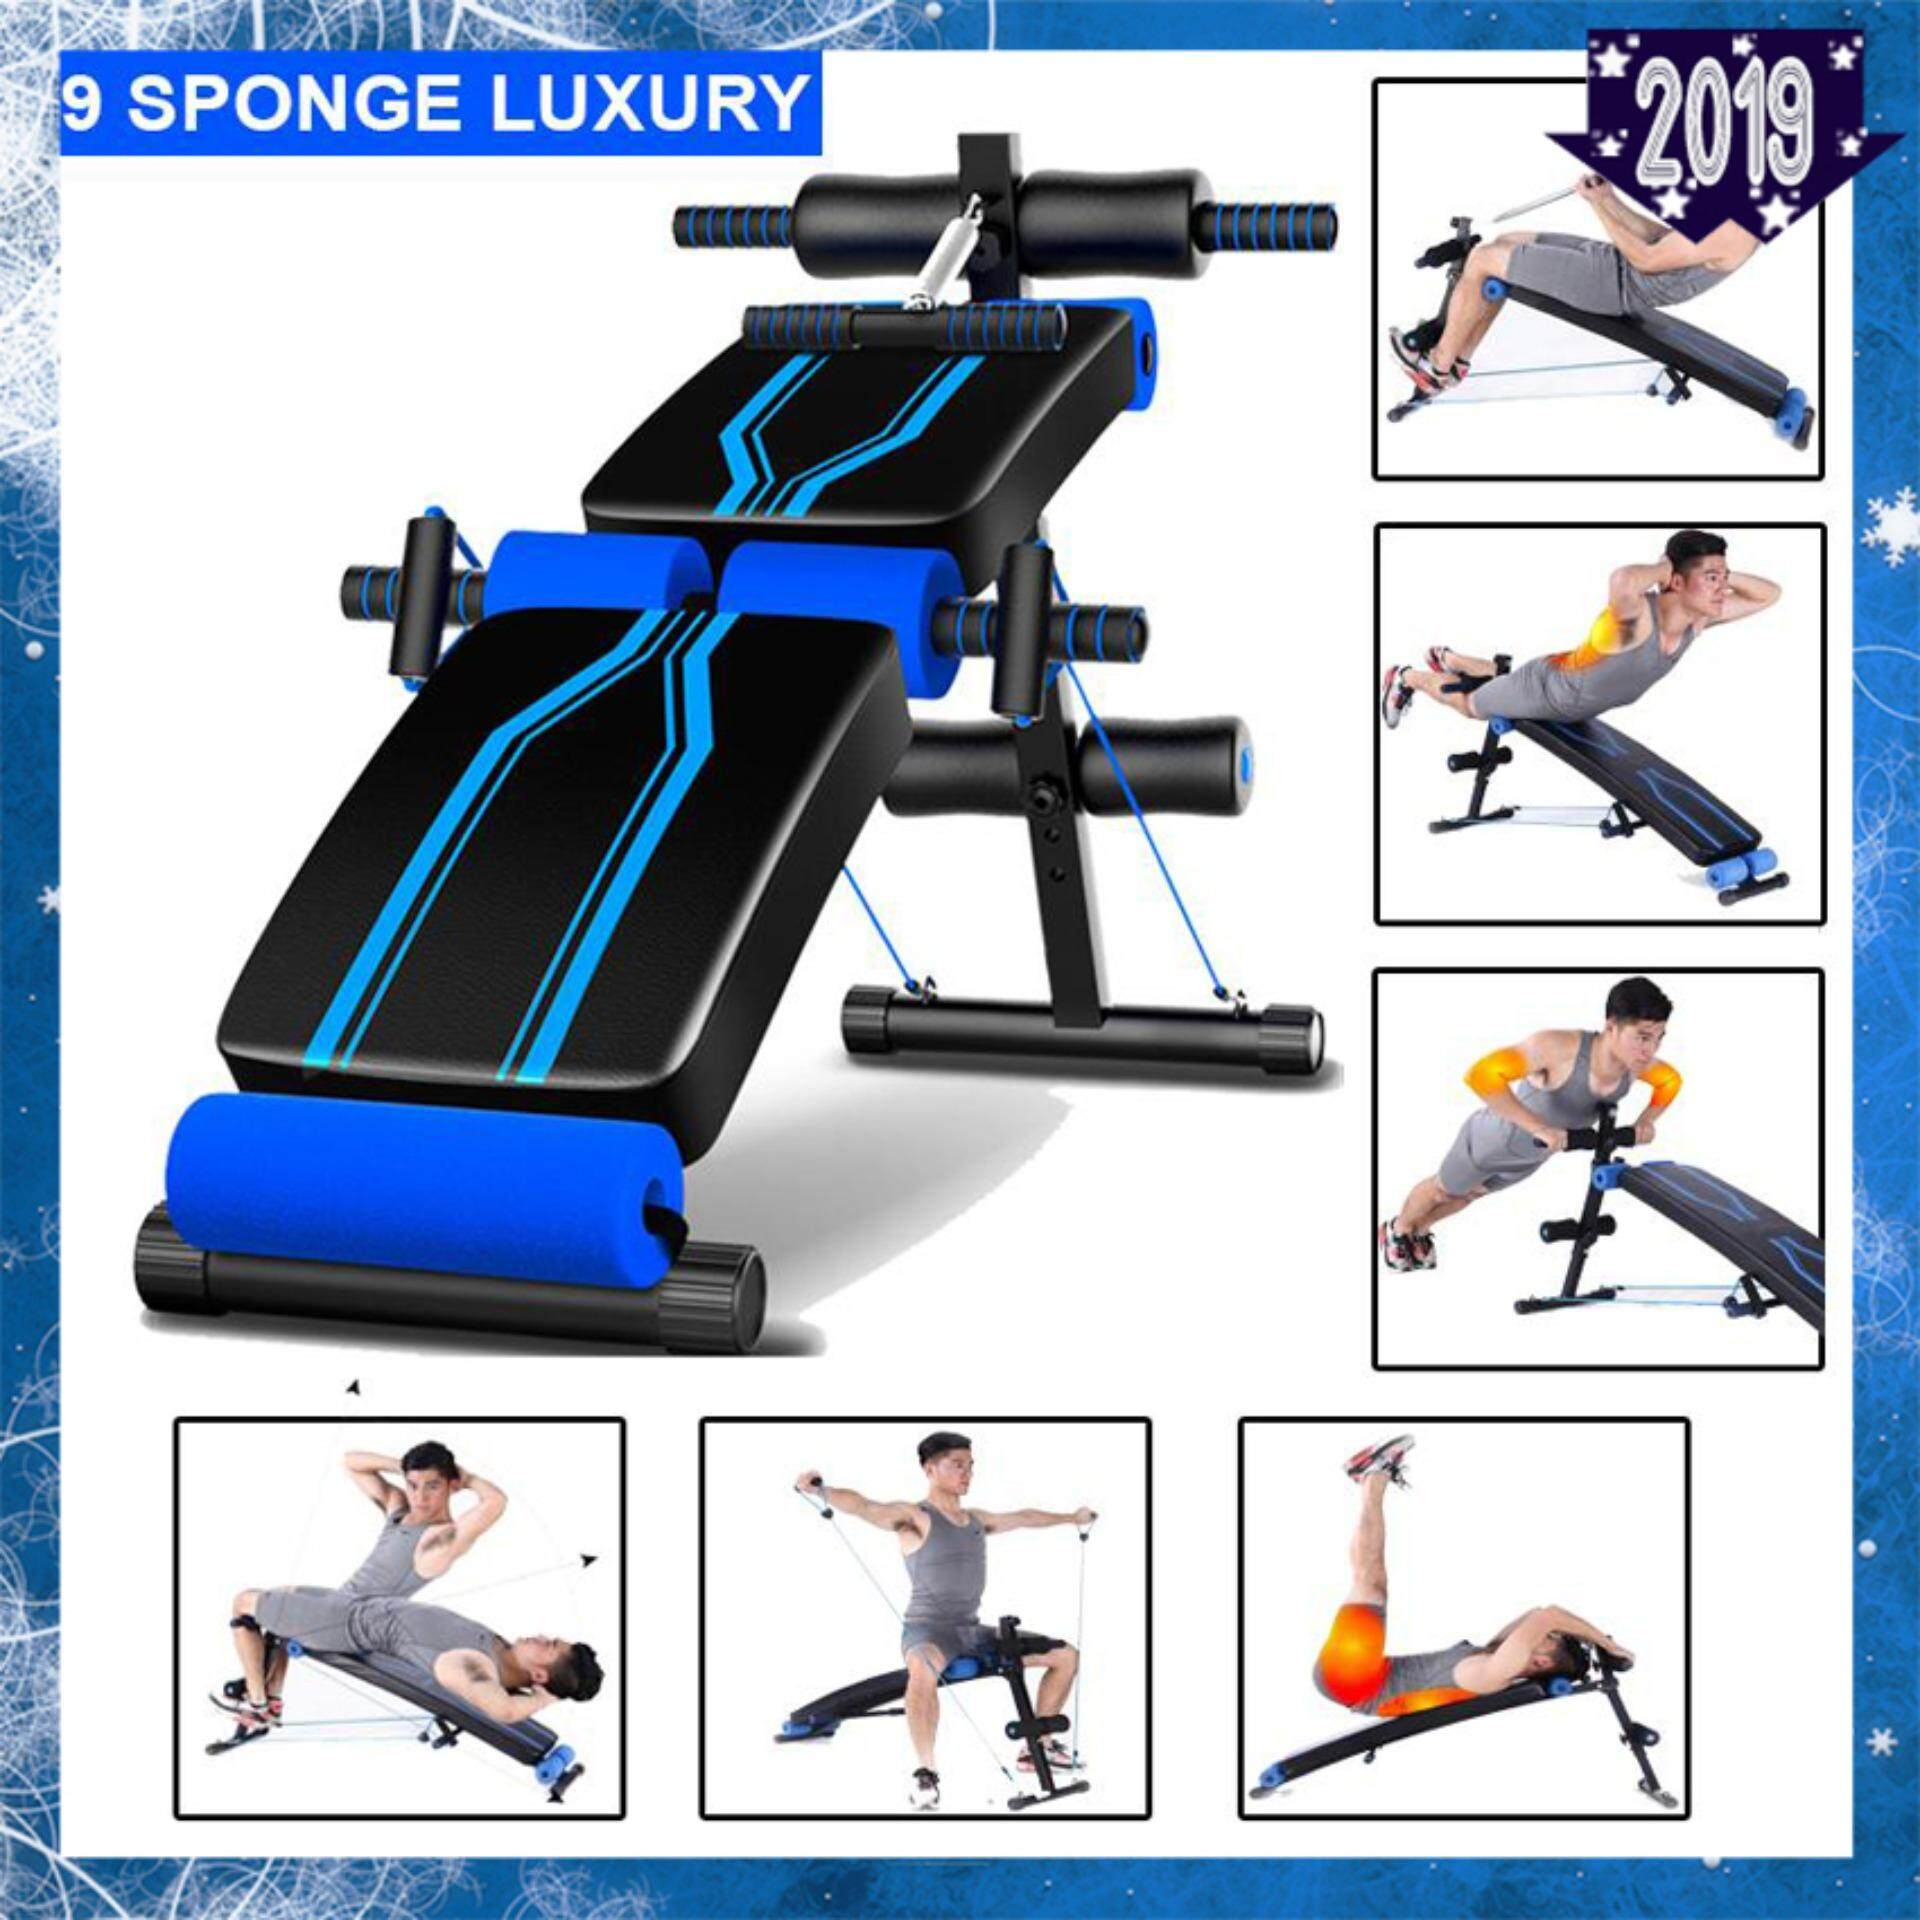 Jianuo 9 Sponge Luxury Multi-Function Fitness Gym Sit Up Bench With Exercise Rope, Spring Pull Exerciser And Push Up Handle By Every1.